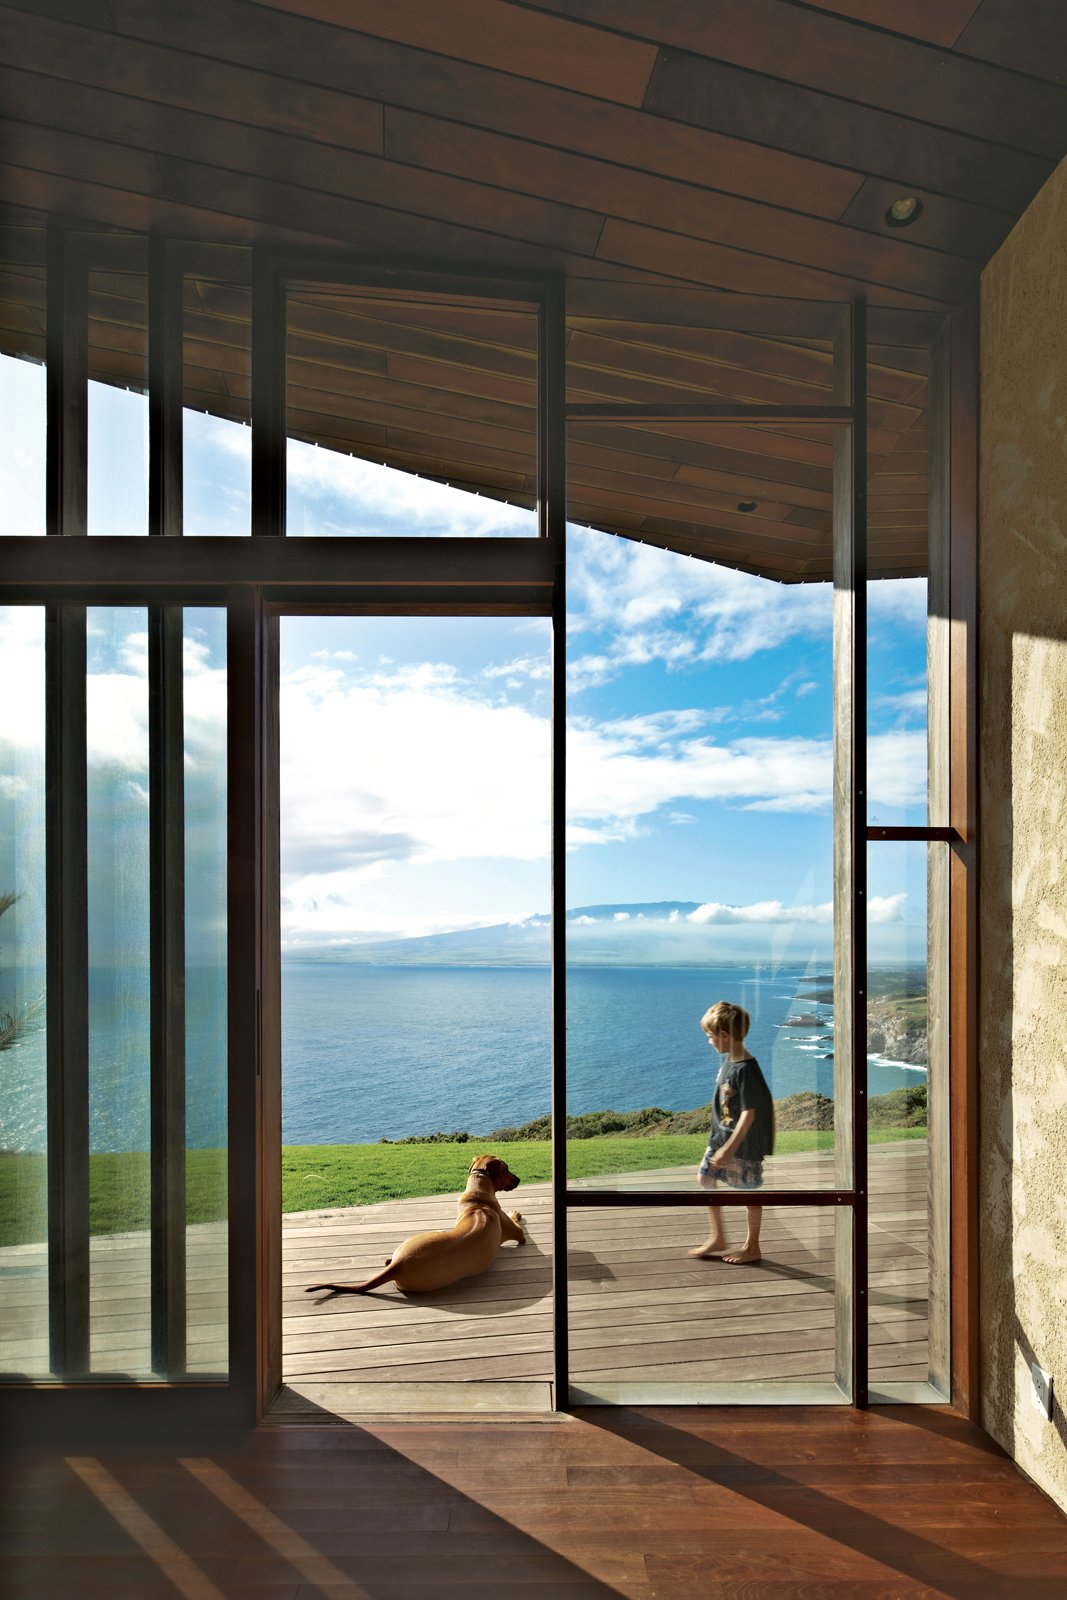 Miha hangs out with Kea, the dog, on the wooden deck that extends the living space outdoors. Tagged: Outdoor, Large Patio, Porch, Deck, and Wood Patio, Porch, Deck.  Photo 5 of 10 in Clifftop House with Angled Roof in Maui